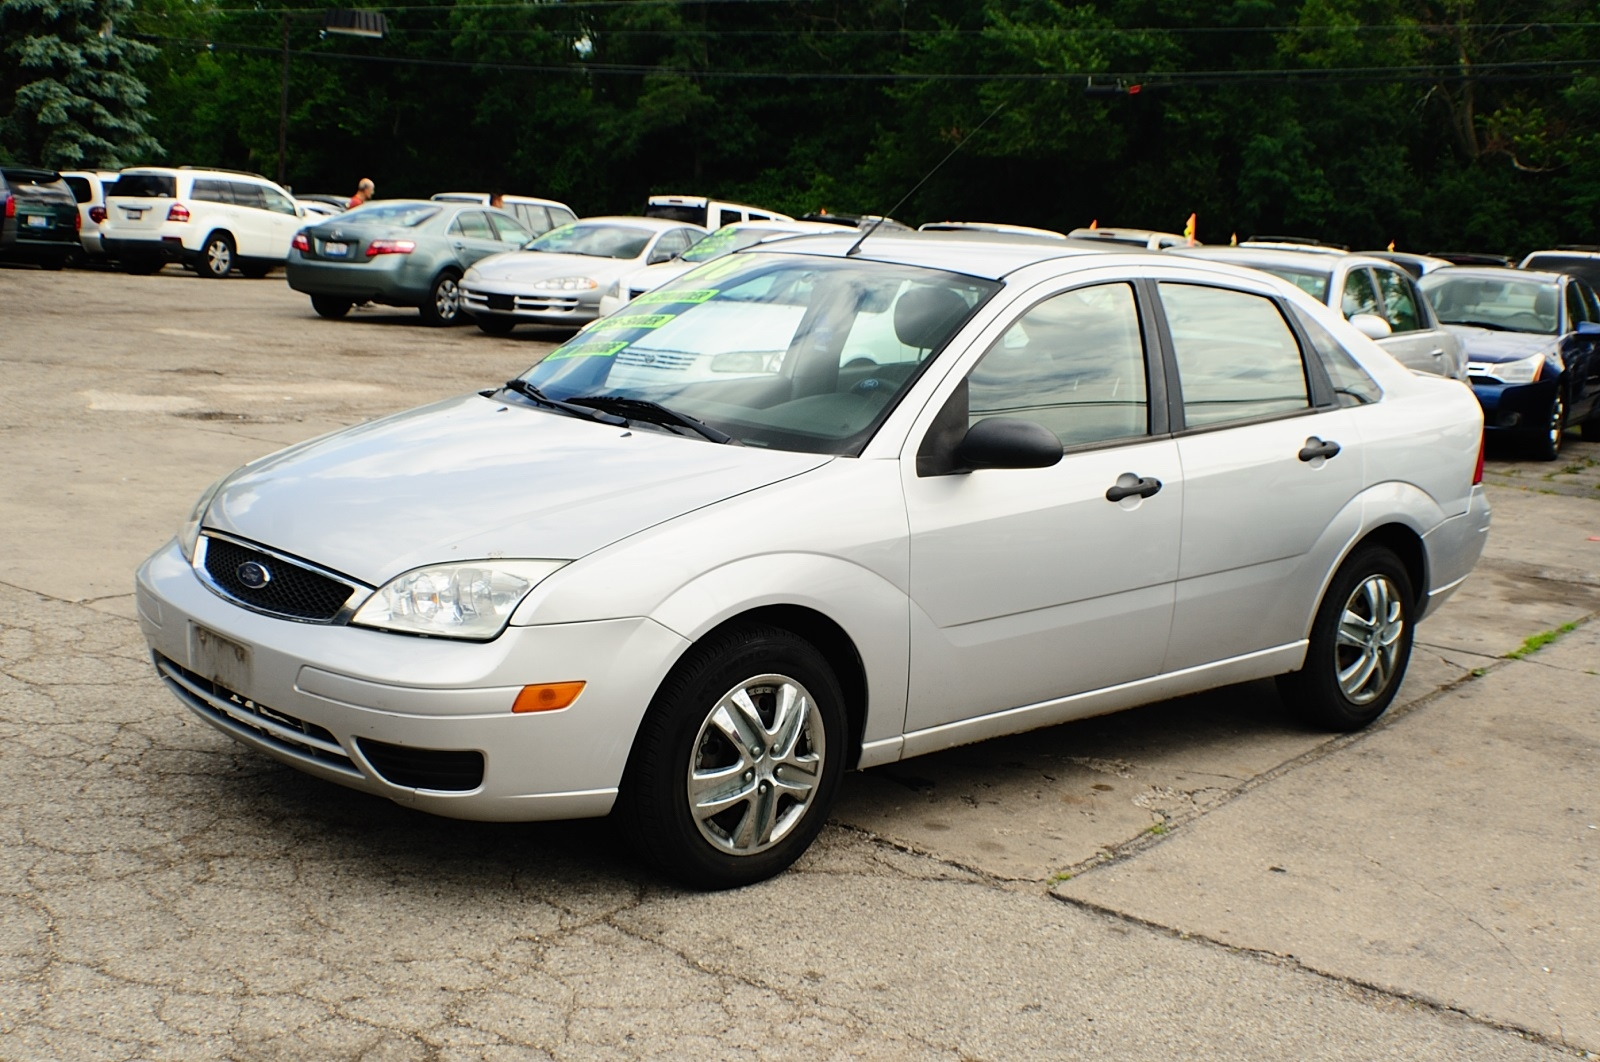 2006 ford focus se silver zx4 used sedan car sale. Black Bedroom Furniture Sets. Home Design Ideas